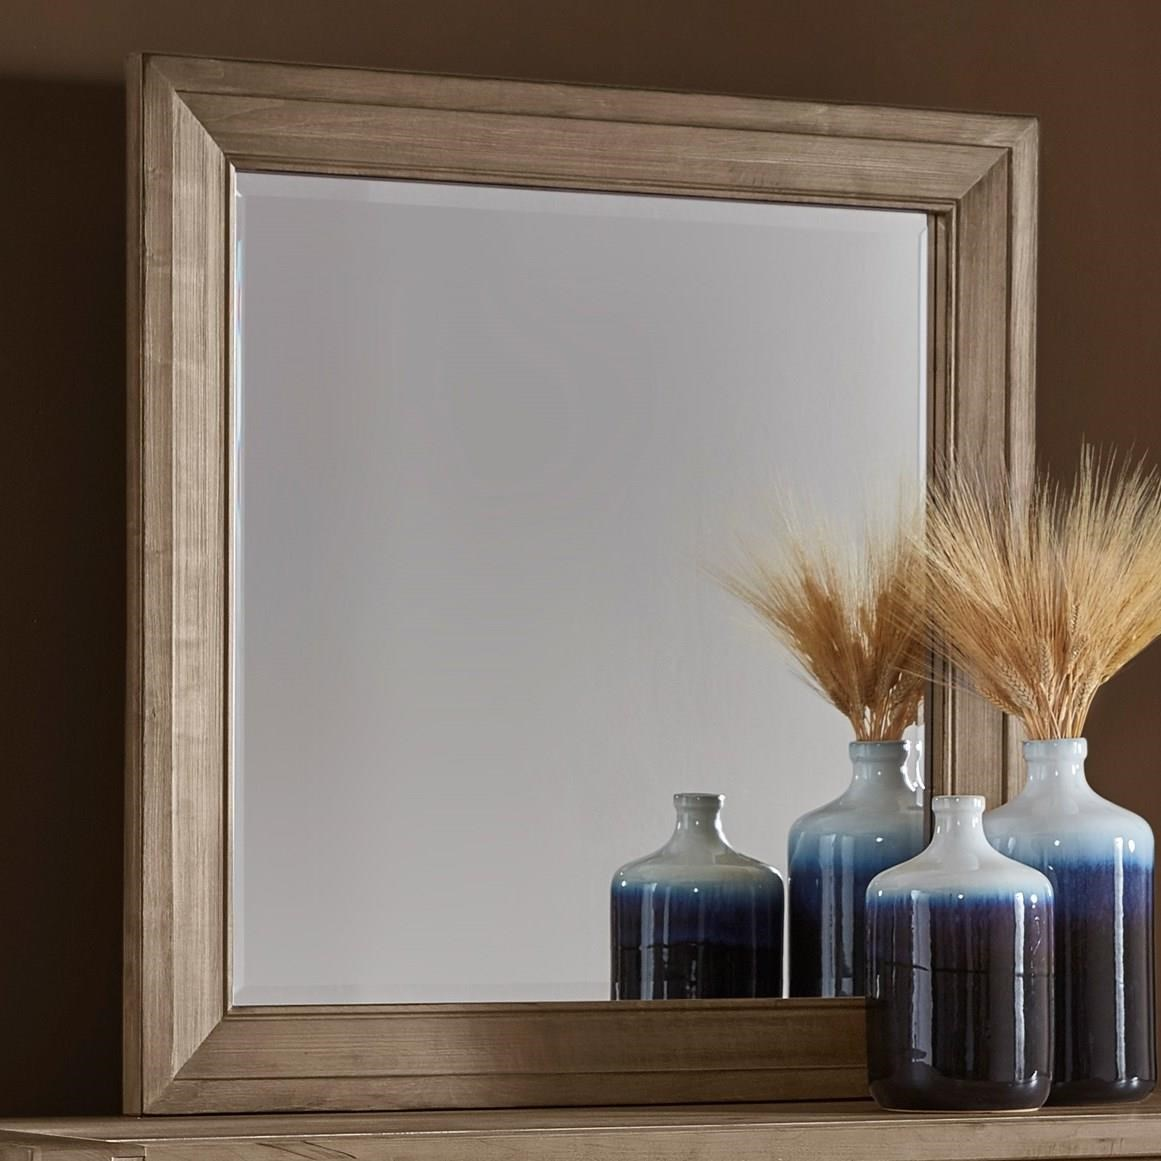 Maple Road Landscape Mirror - Beveled glass by Artisan & Post at Northeast Factory Direct